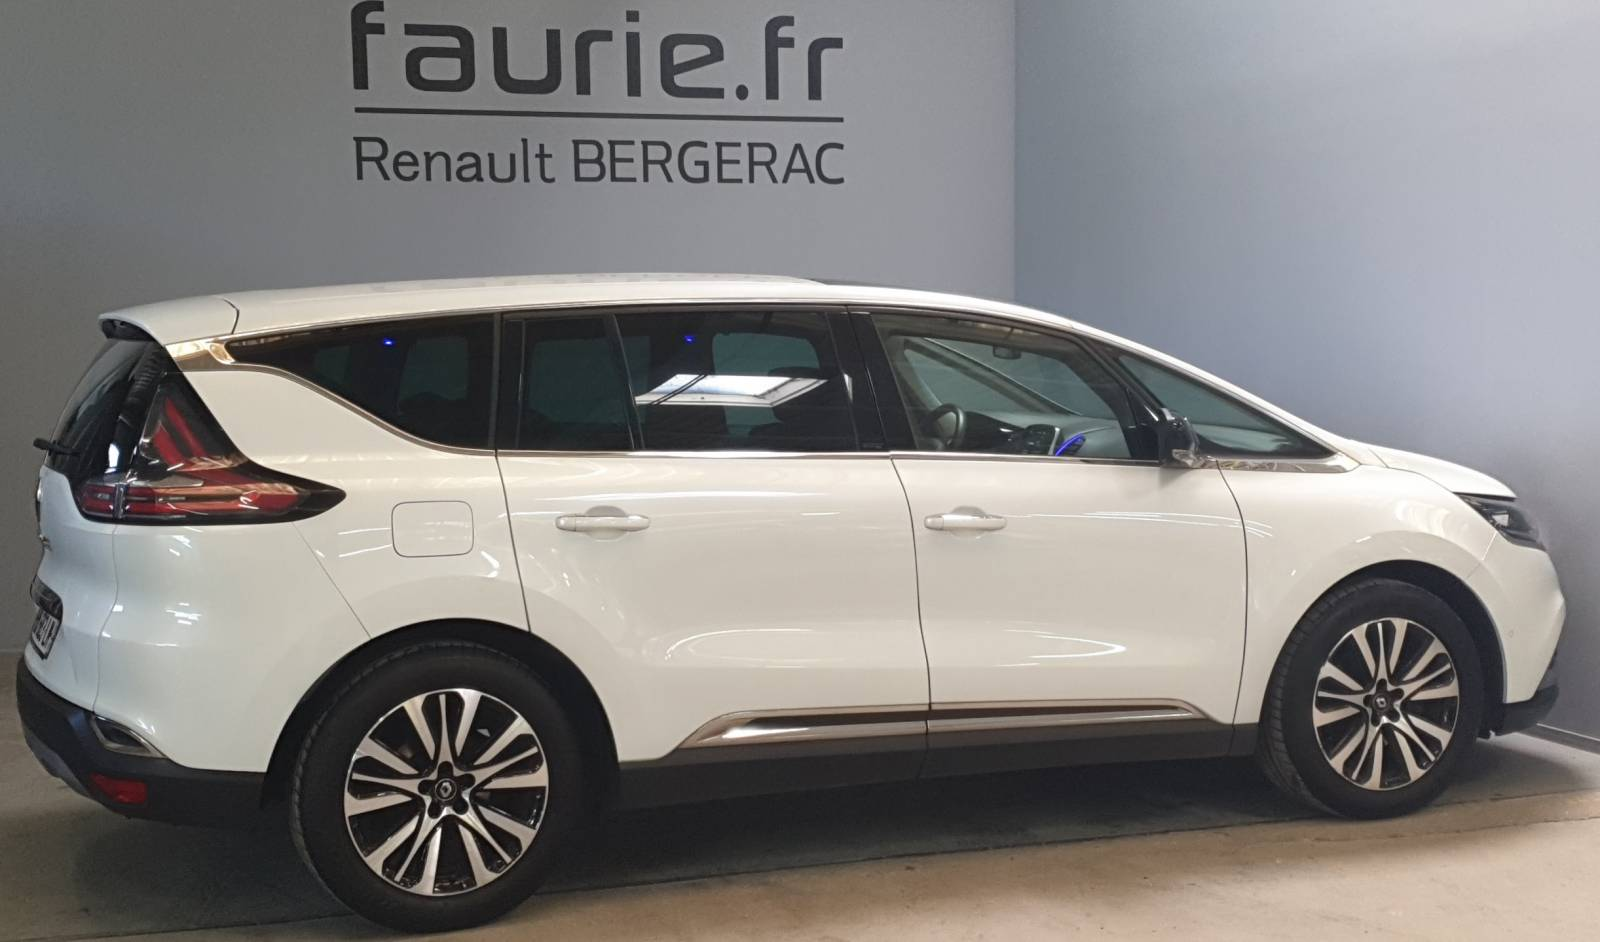 RENAULT Espace dCi 160 Energy Twin Turbo - véhicule d'occasion - Site Internet Faurie - Renault - Faurie Auto Bergerac - 24100 - Bergerac - 4